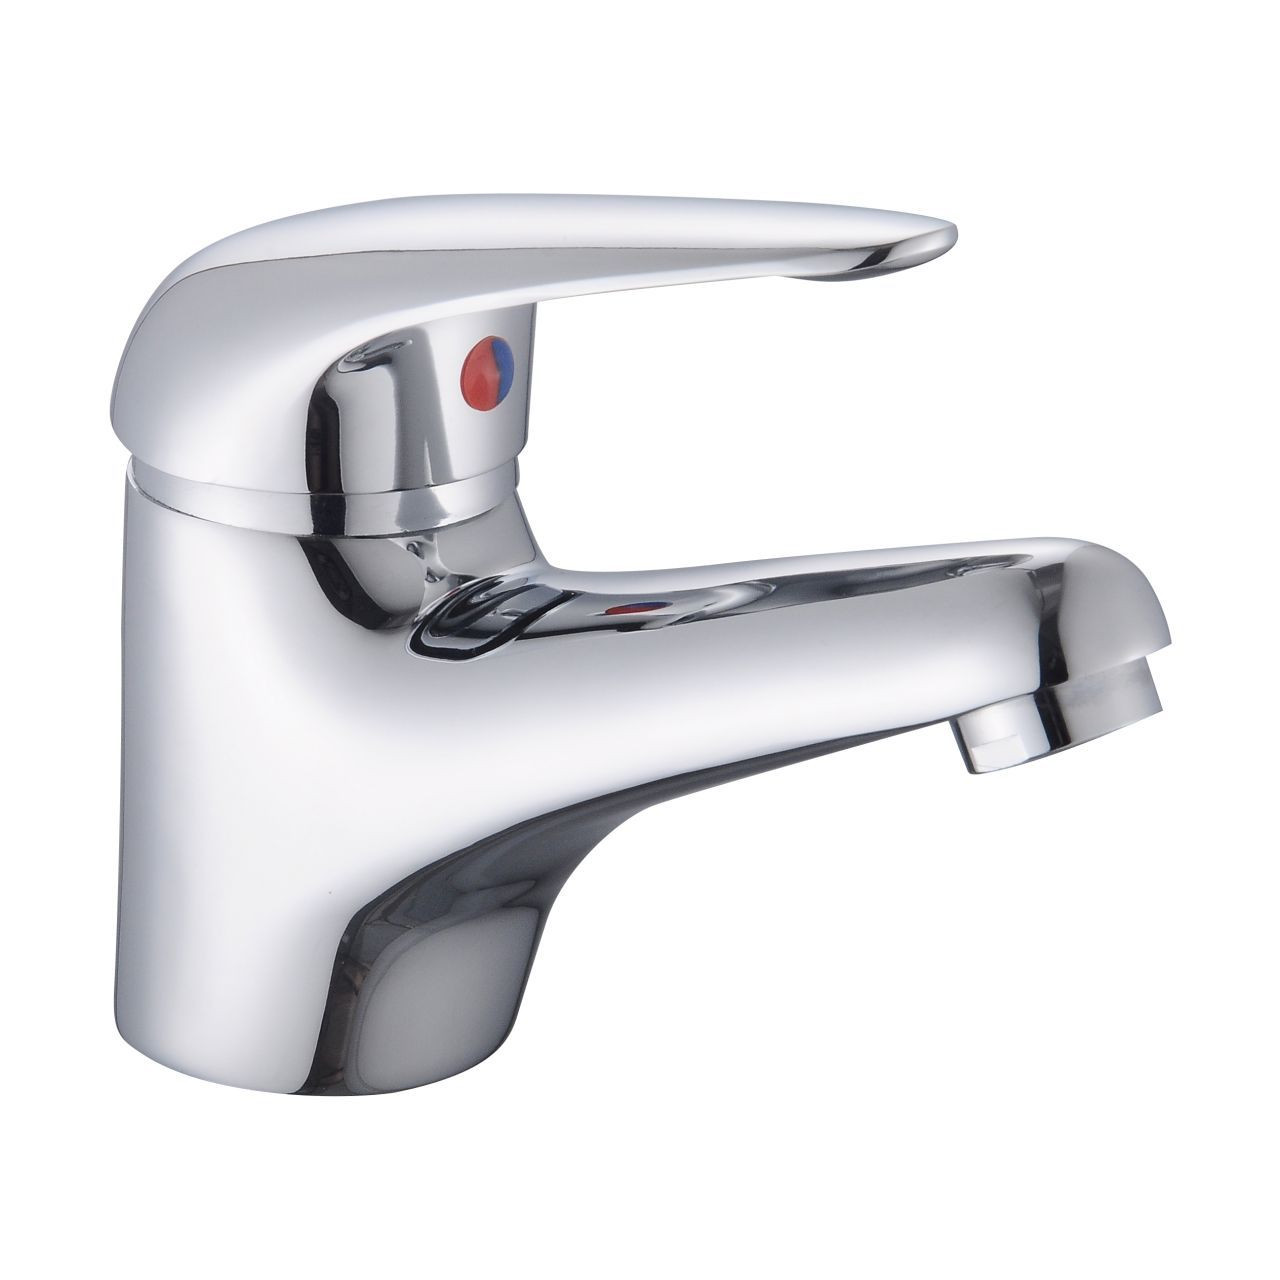 RAK Basic Mono Basin Mixer Tap with Clicker Waste - RAKBAS3001